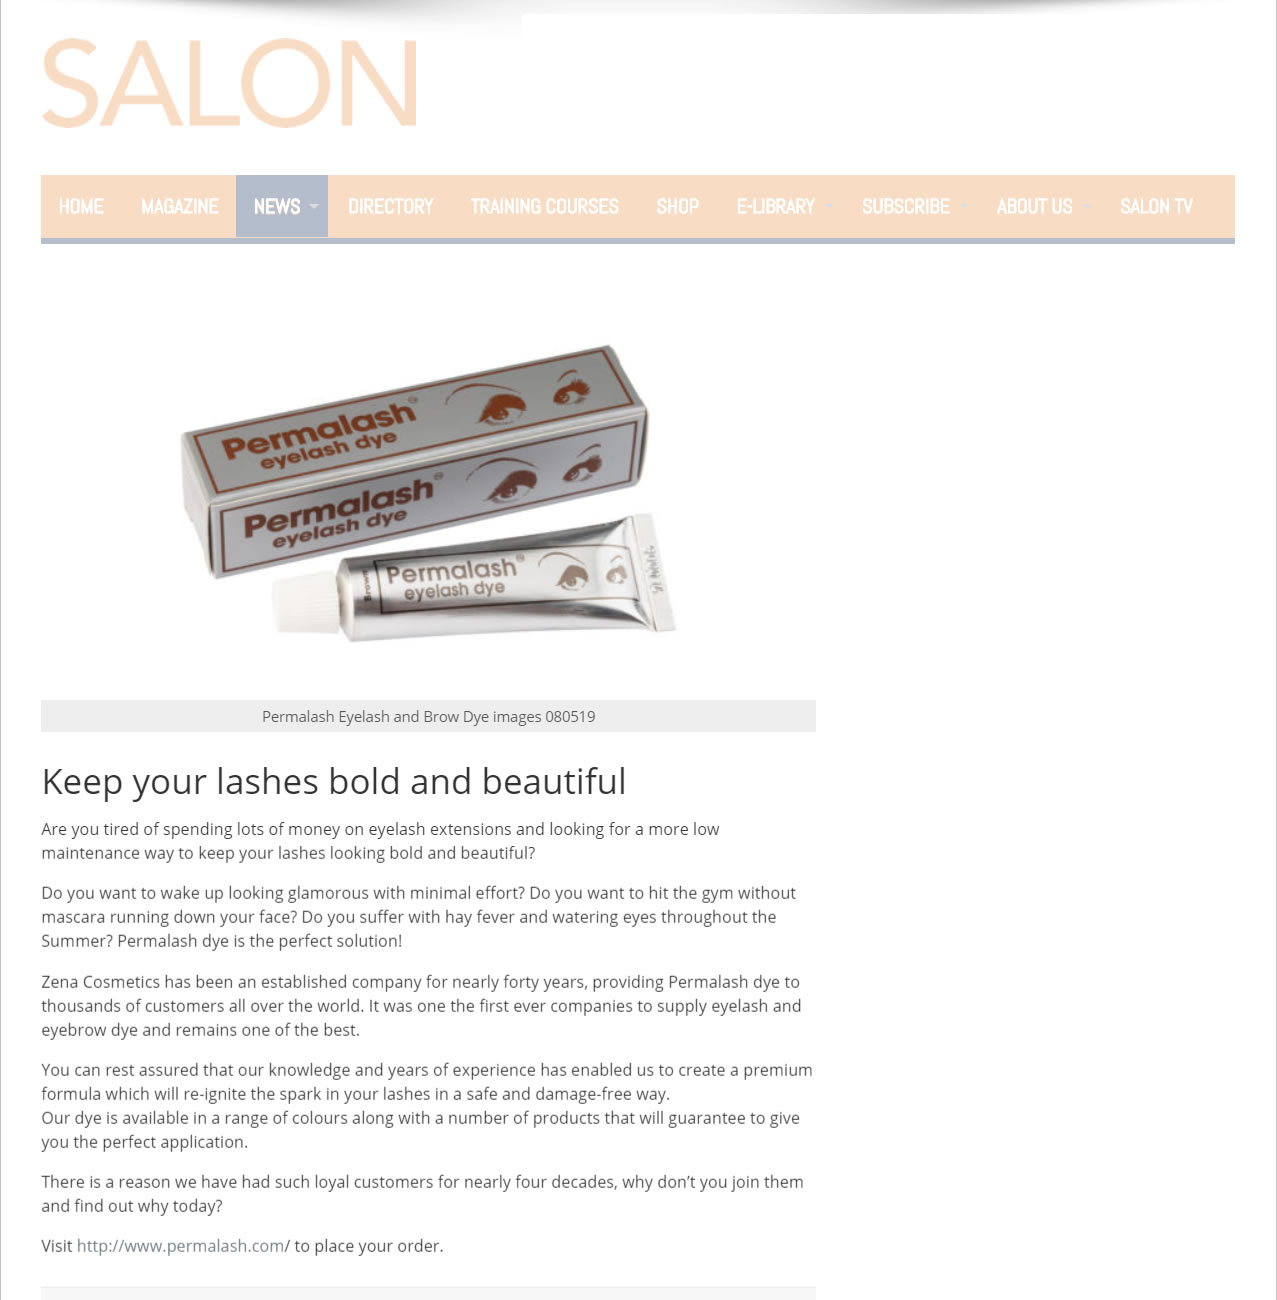 Press Release - The Salon Magazine - Permalash